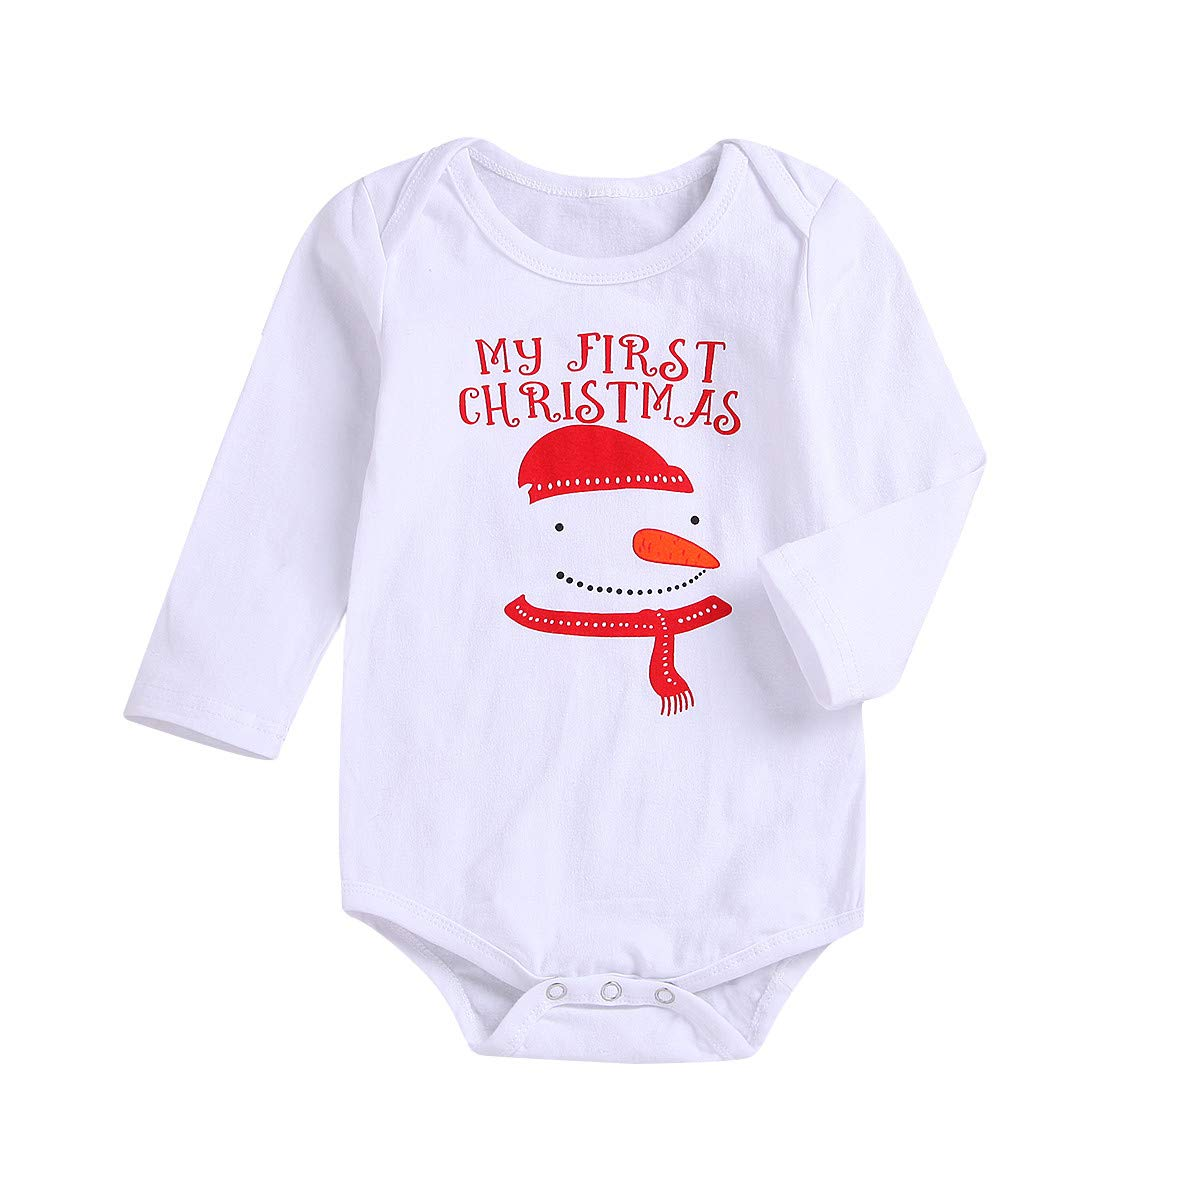 Baby Outfits Unisex Love Daddy,Newborn Baby Girls Boys Long Sleeves Snow Man Print Romper Jumpsuit Kids Clothes,Baby Girls' Boots,White,90